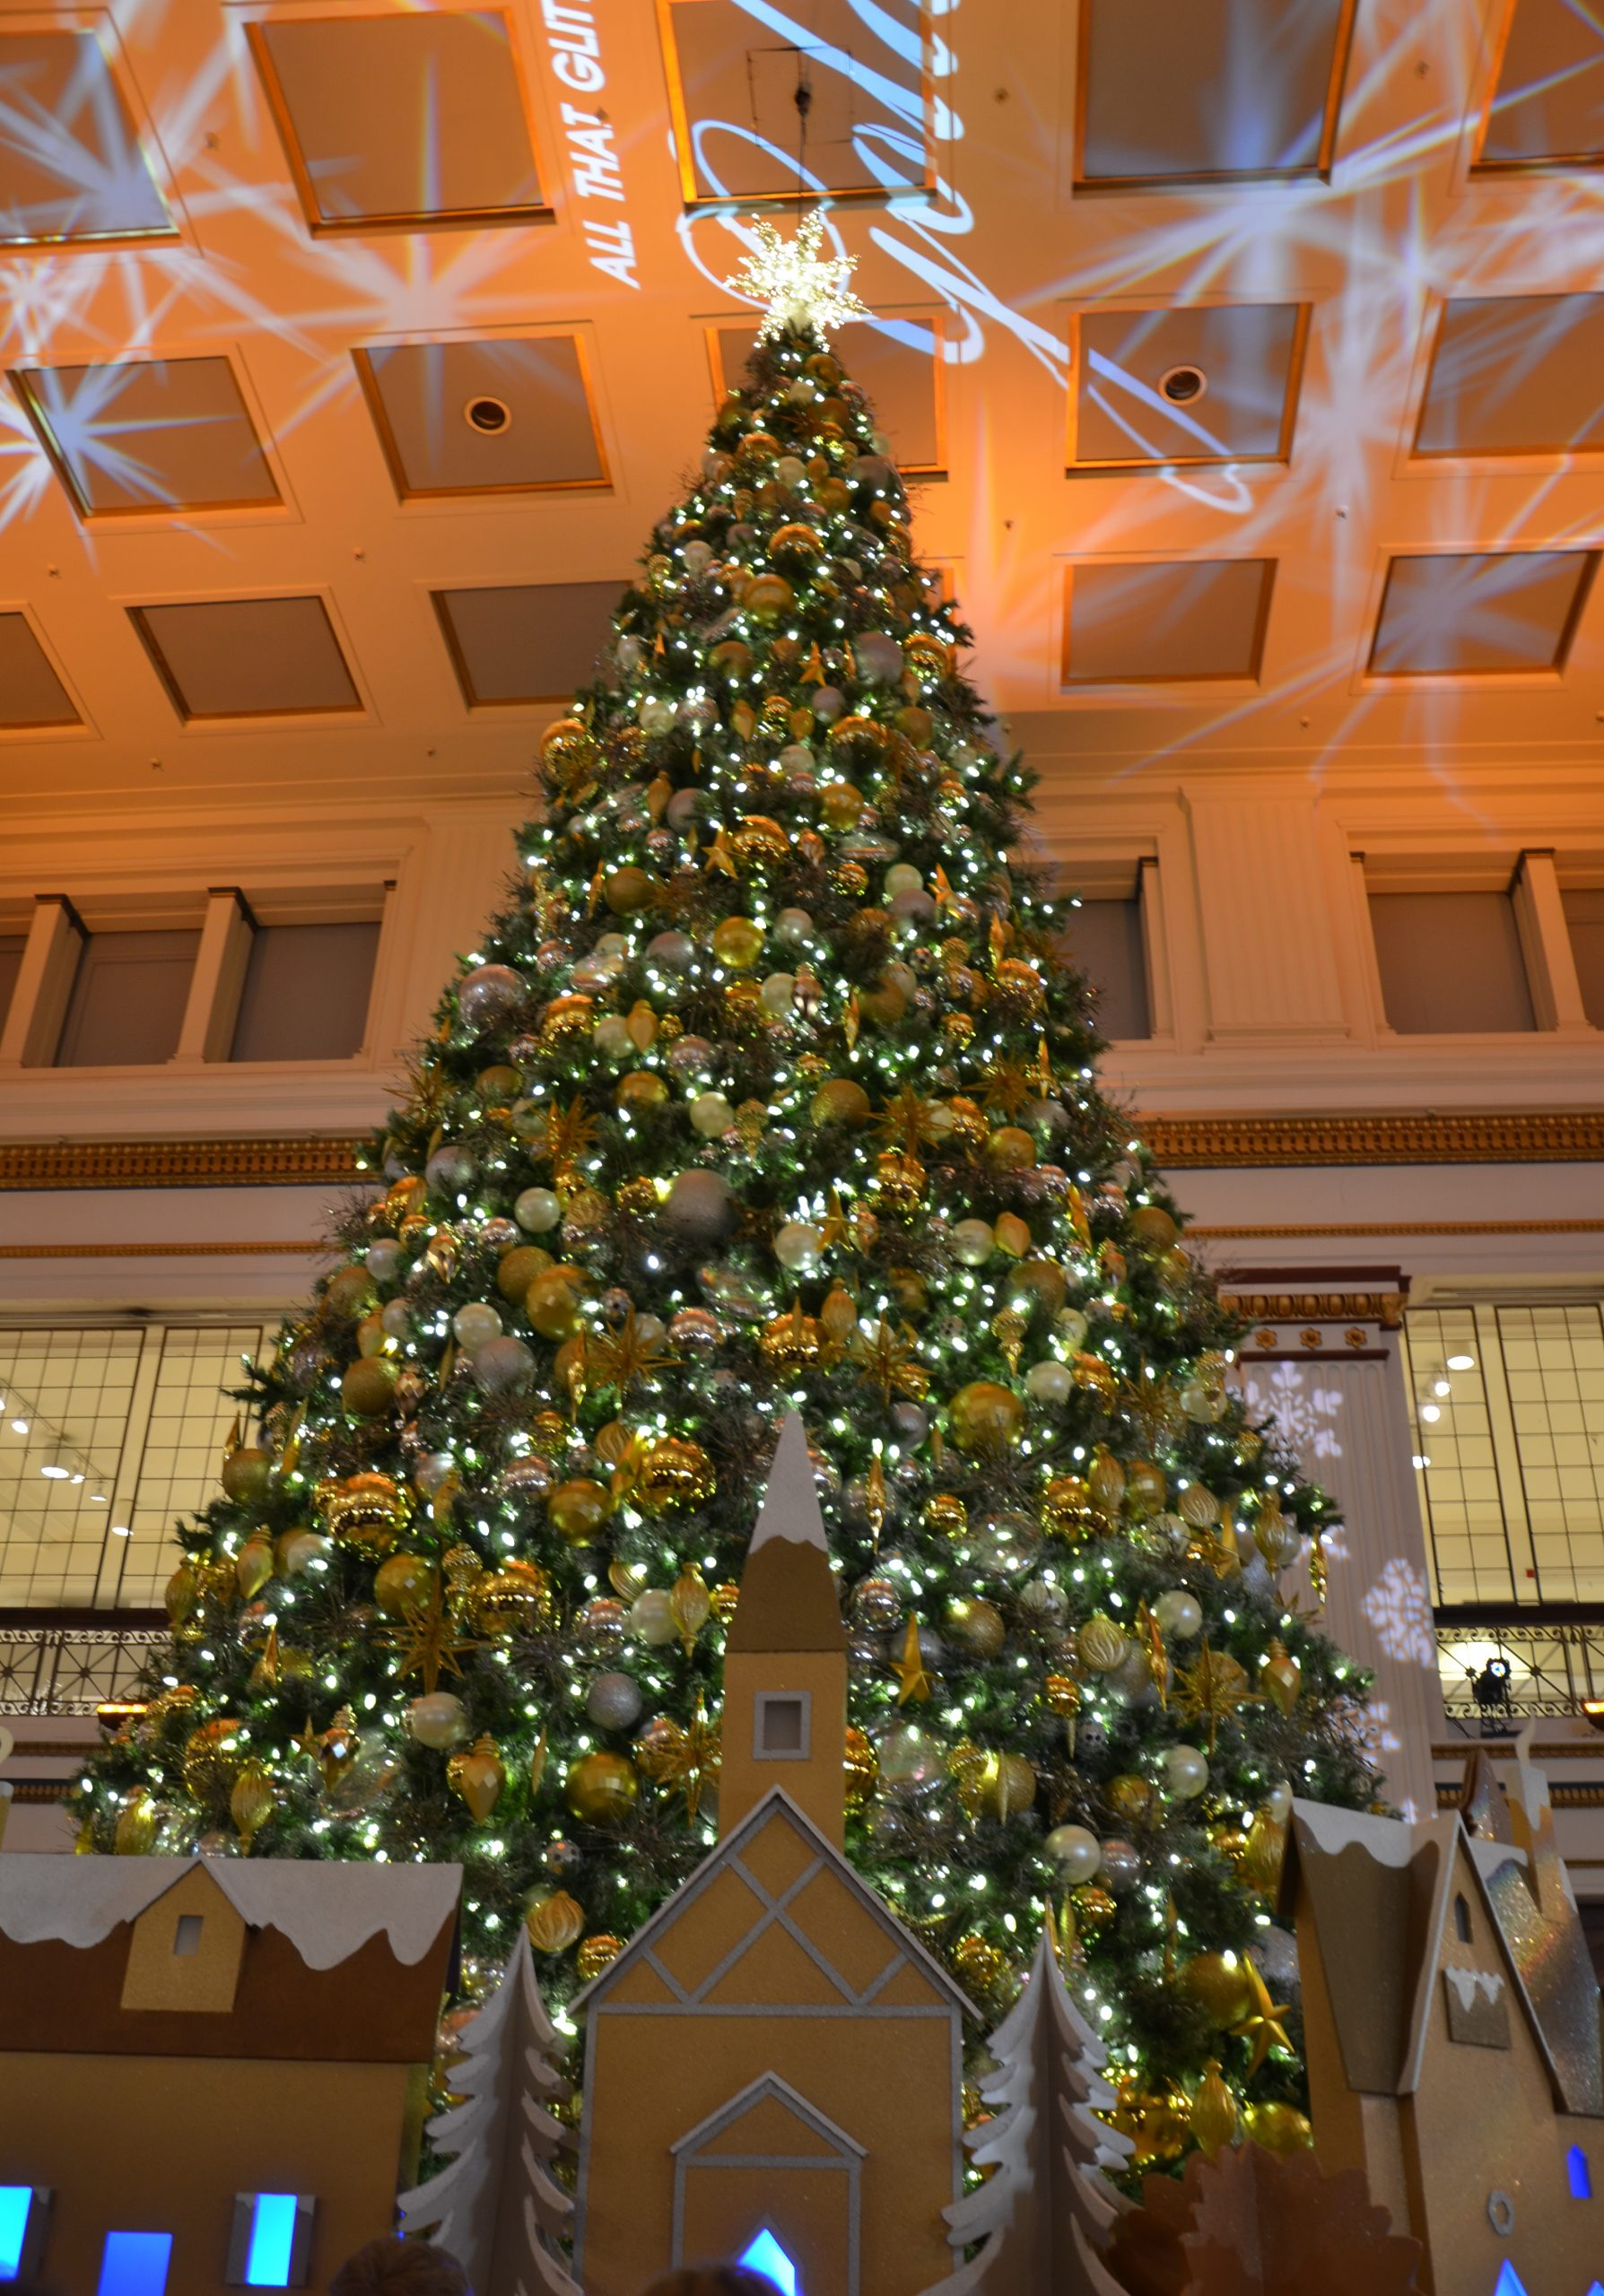 Chicago Holiday Memories - Ms. Mae Travels